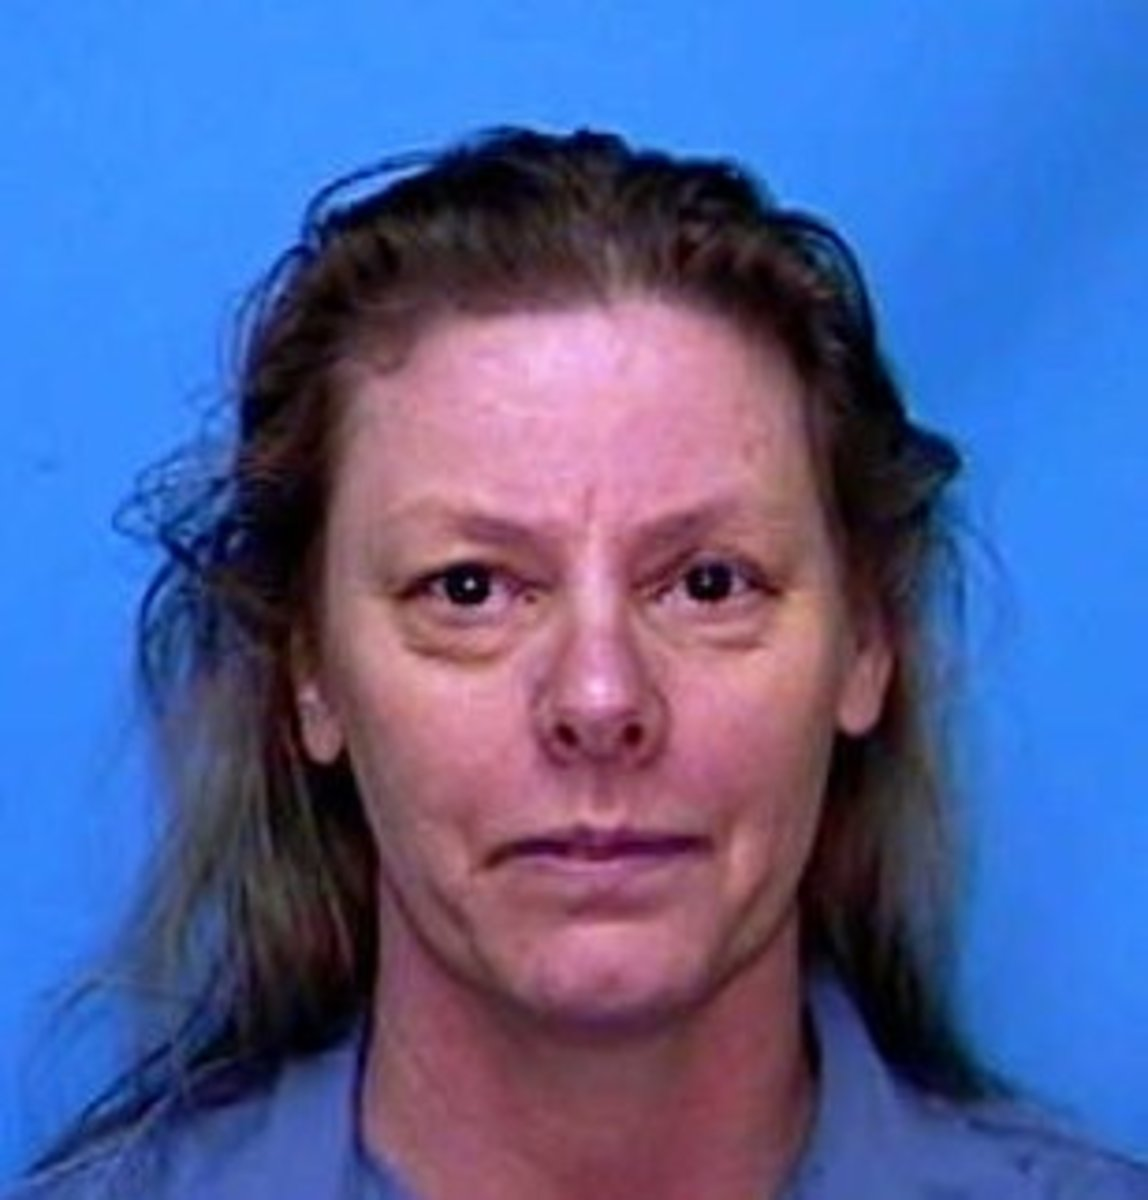 Aileen Wuornos was a female serial killer who killed seven men in Florida between 1989 and 1990.  She claimed self defense at her trial, but was found guilty of six murders and executed by the State of Florida by lethal injection on October 9, 2002.